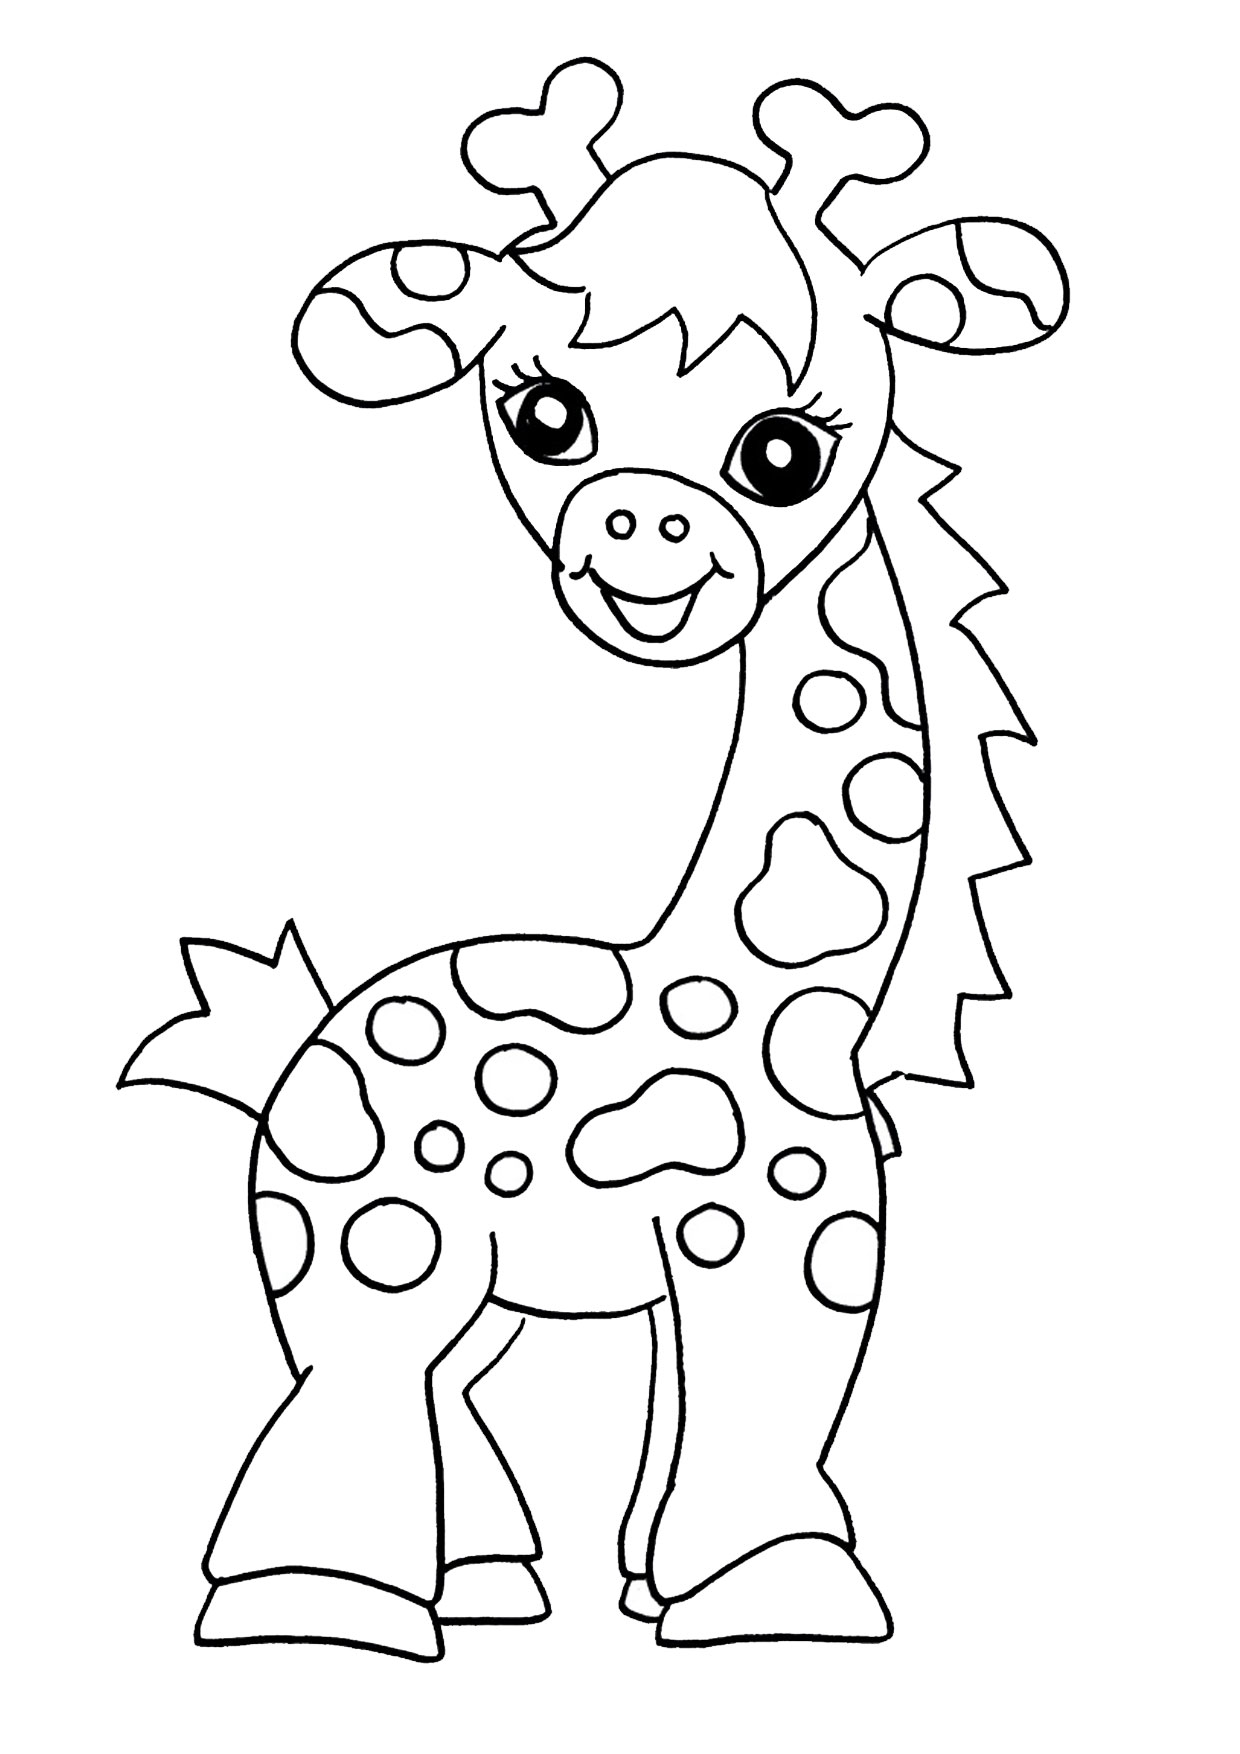 Giraffa in versione cartoon 09